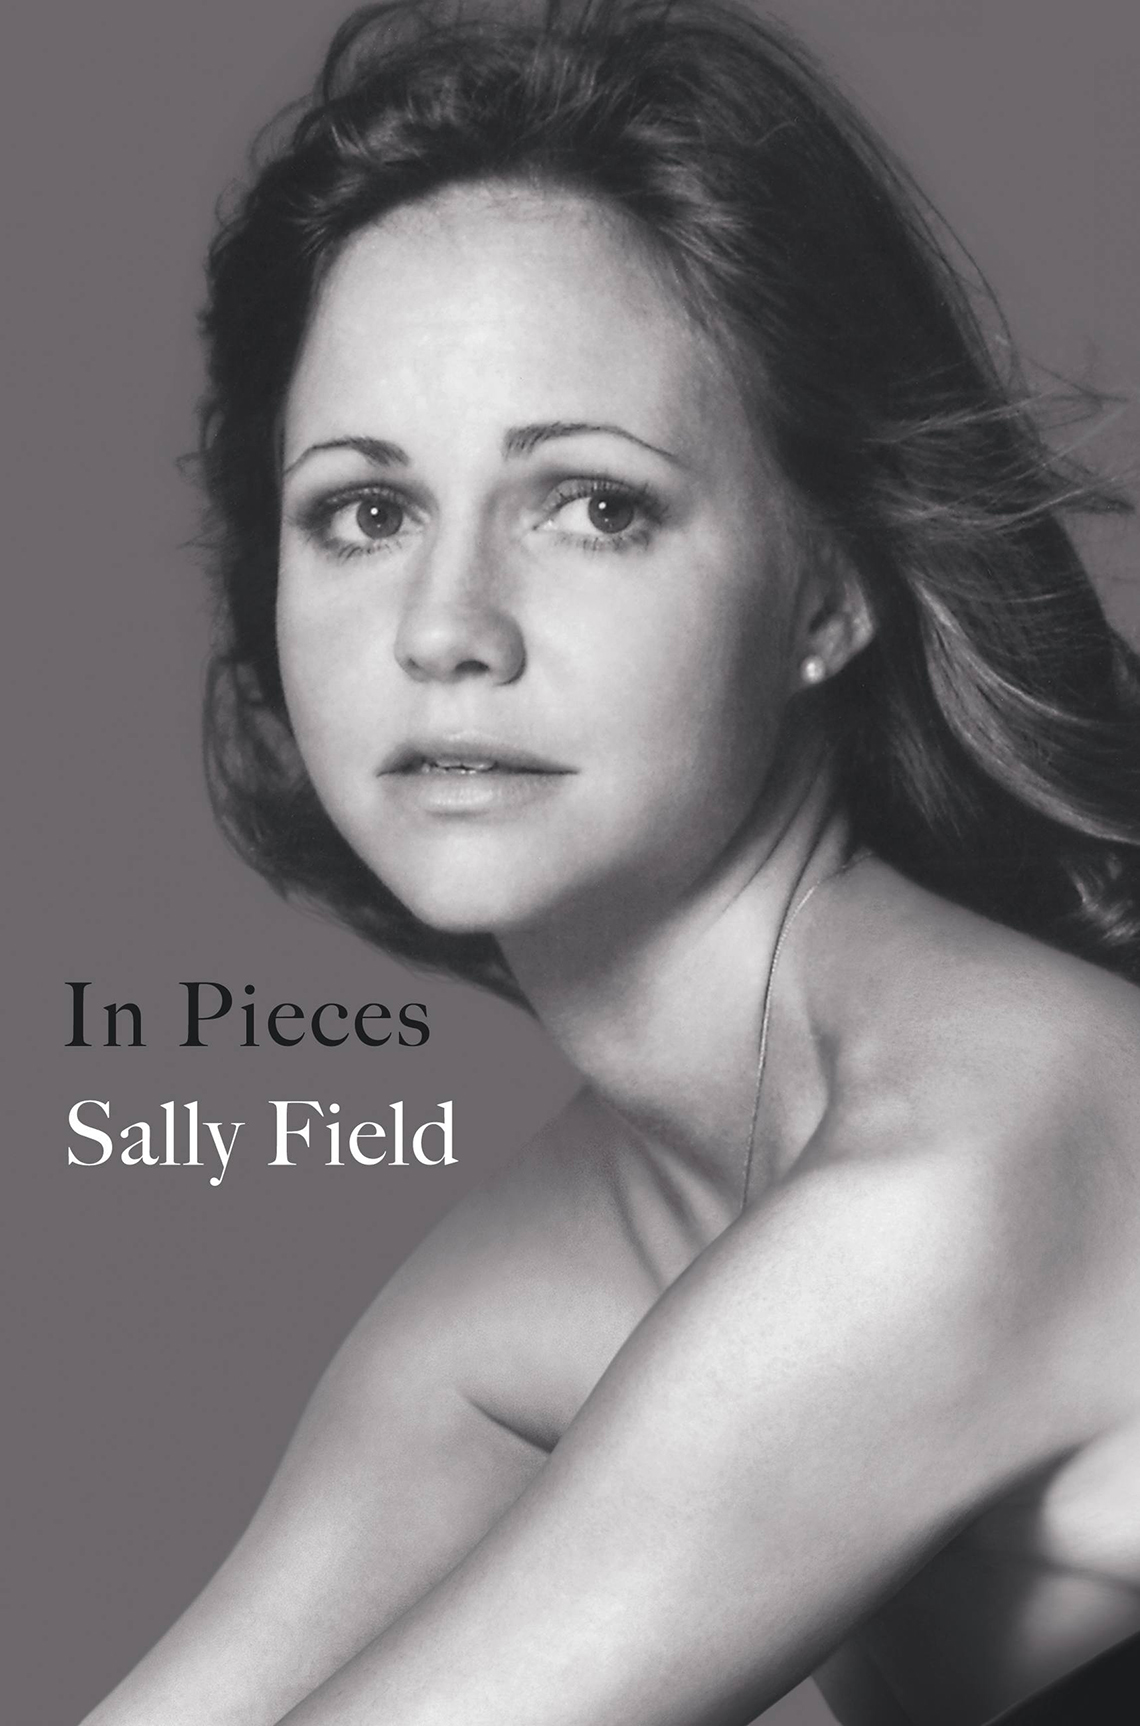 """Sally Field, """"In Pieces"""" book cover"""